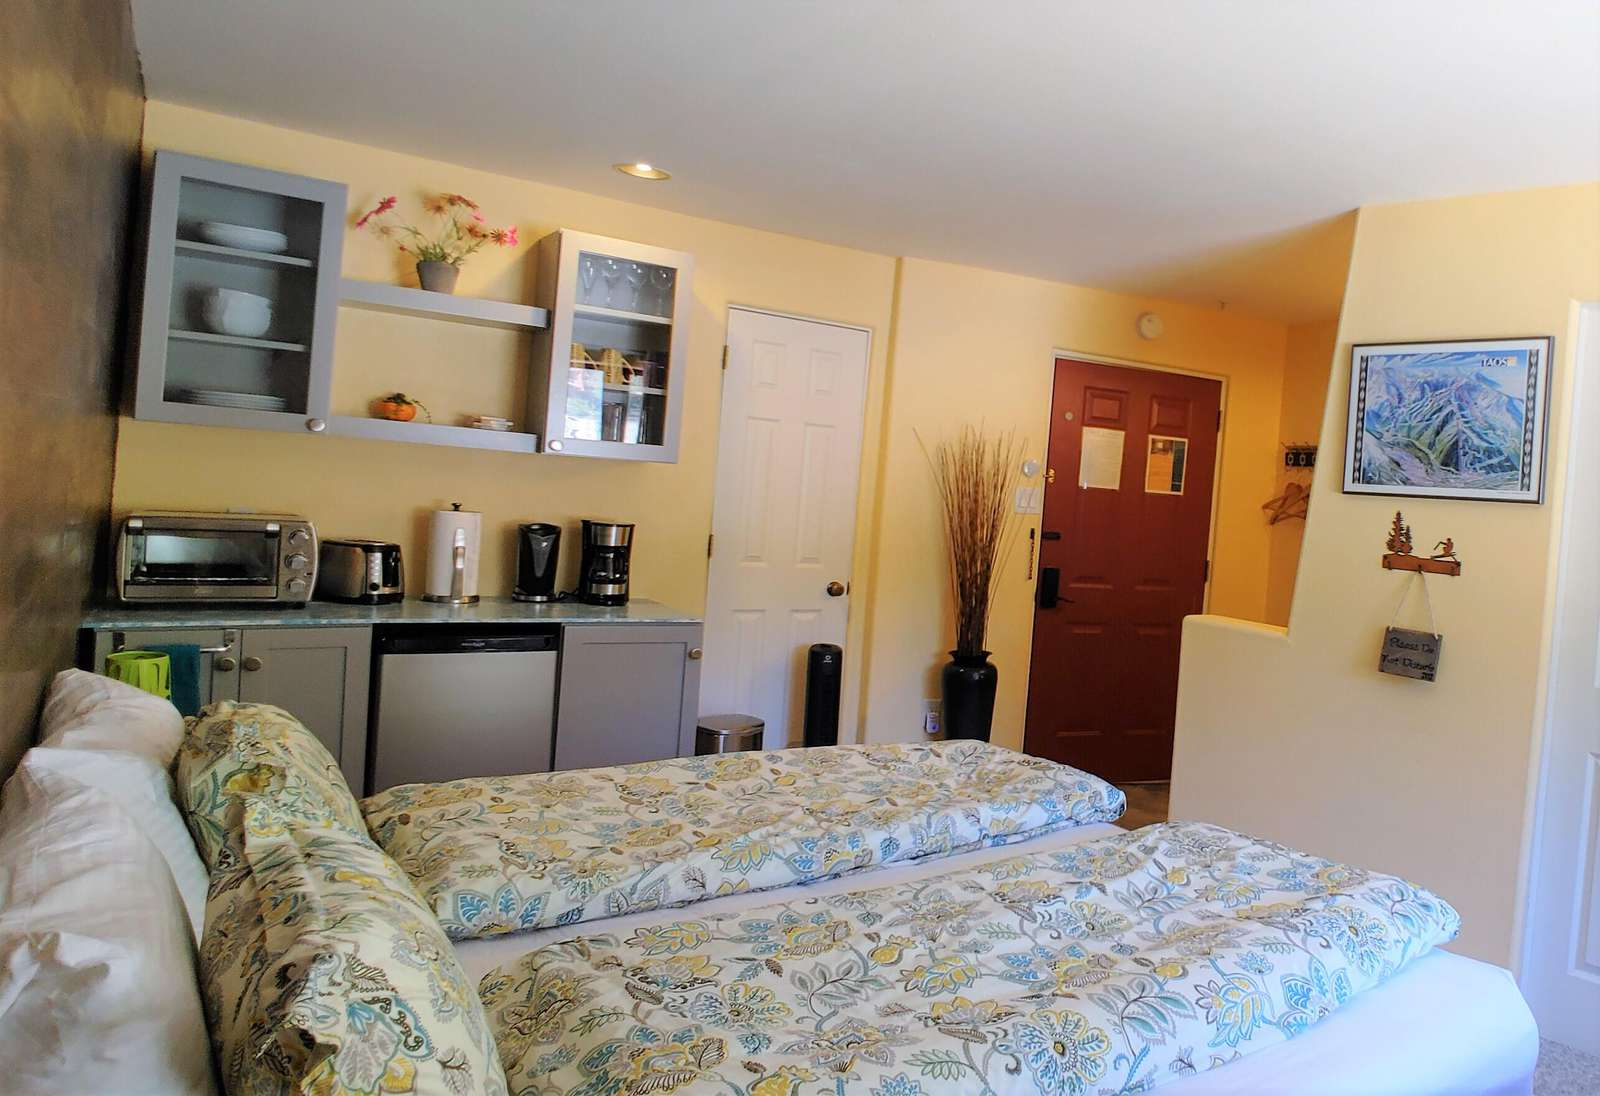 King bed and breakfast bar in #202 facing condo entrance door to 202 and privacy door to #201